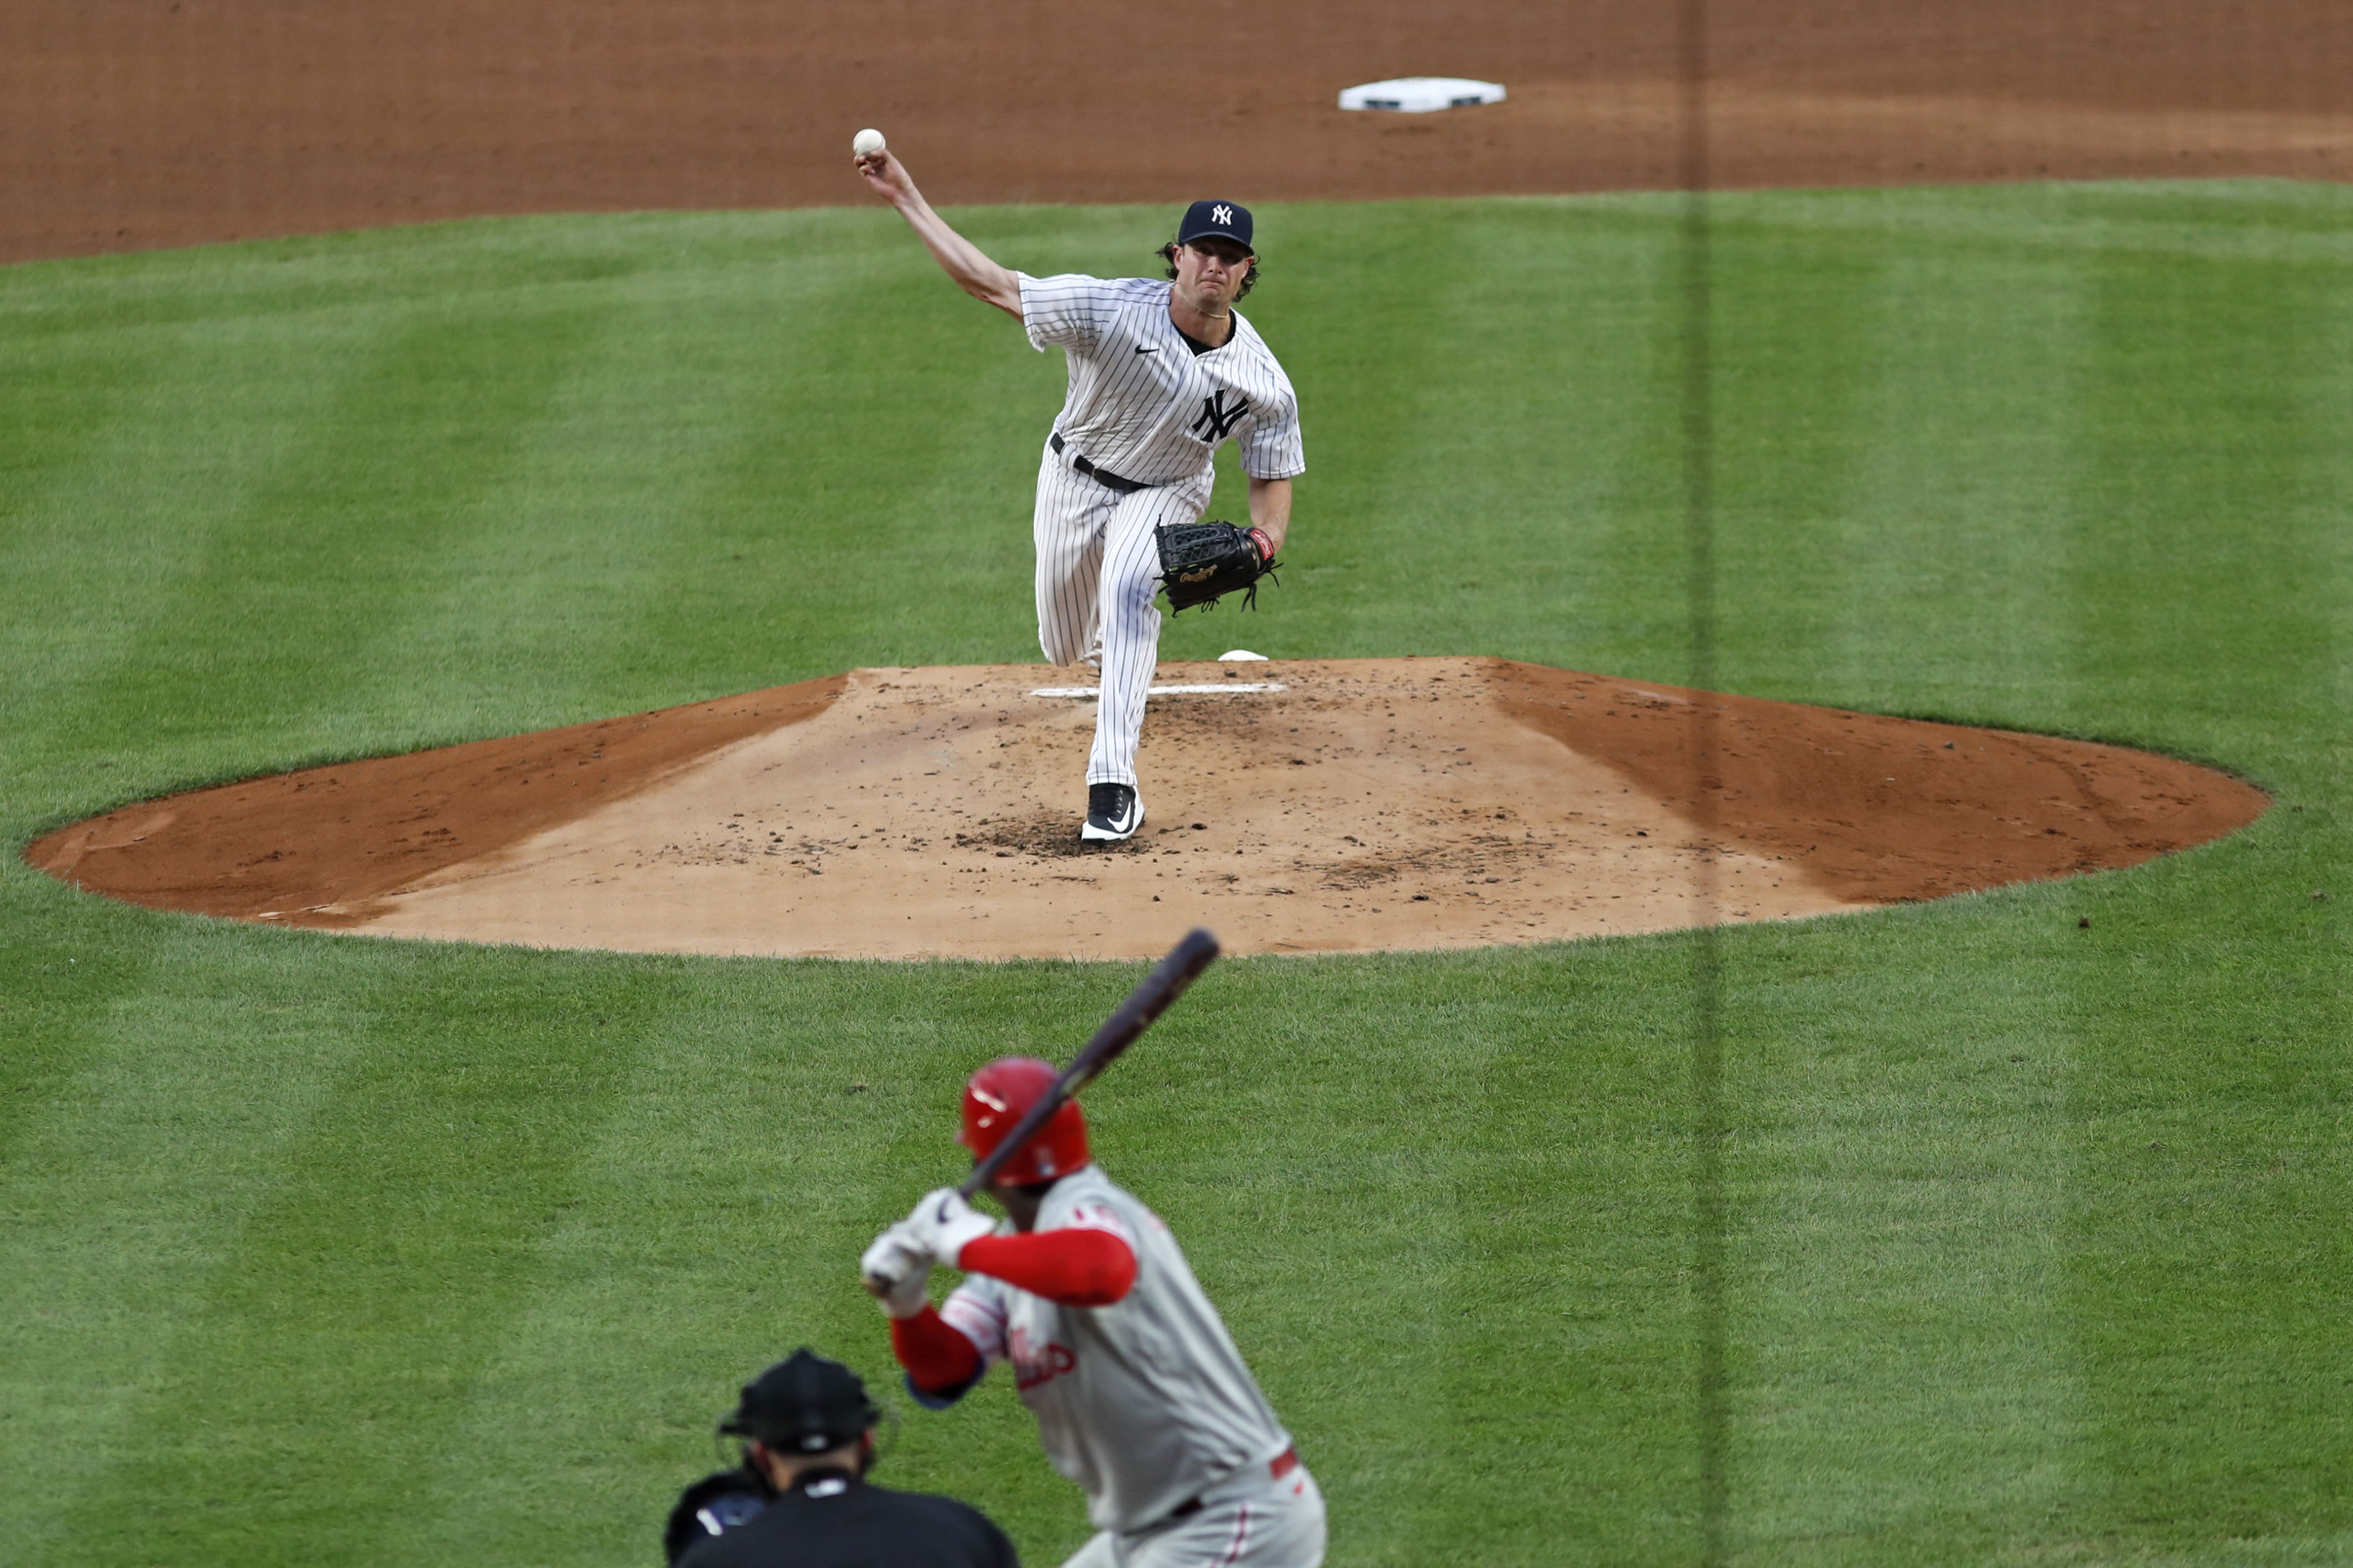 New York Yankees starting pitcher Gerrit Cole delivers to Philadelphia Phillies Didi Gregorius during the second inning of a baseball game, Monday, Aug. 3, 2020, at Yankee Stadium in New York. (AP Photo/Kathy Willens)